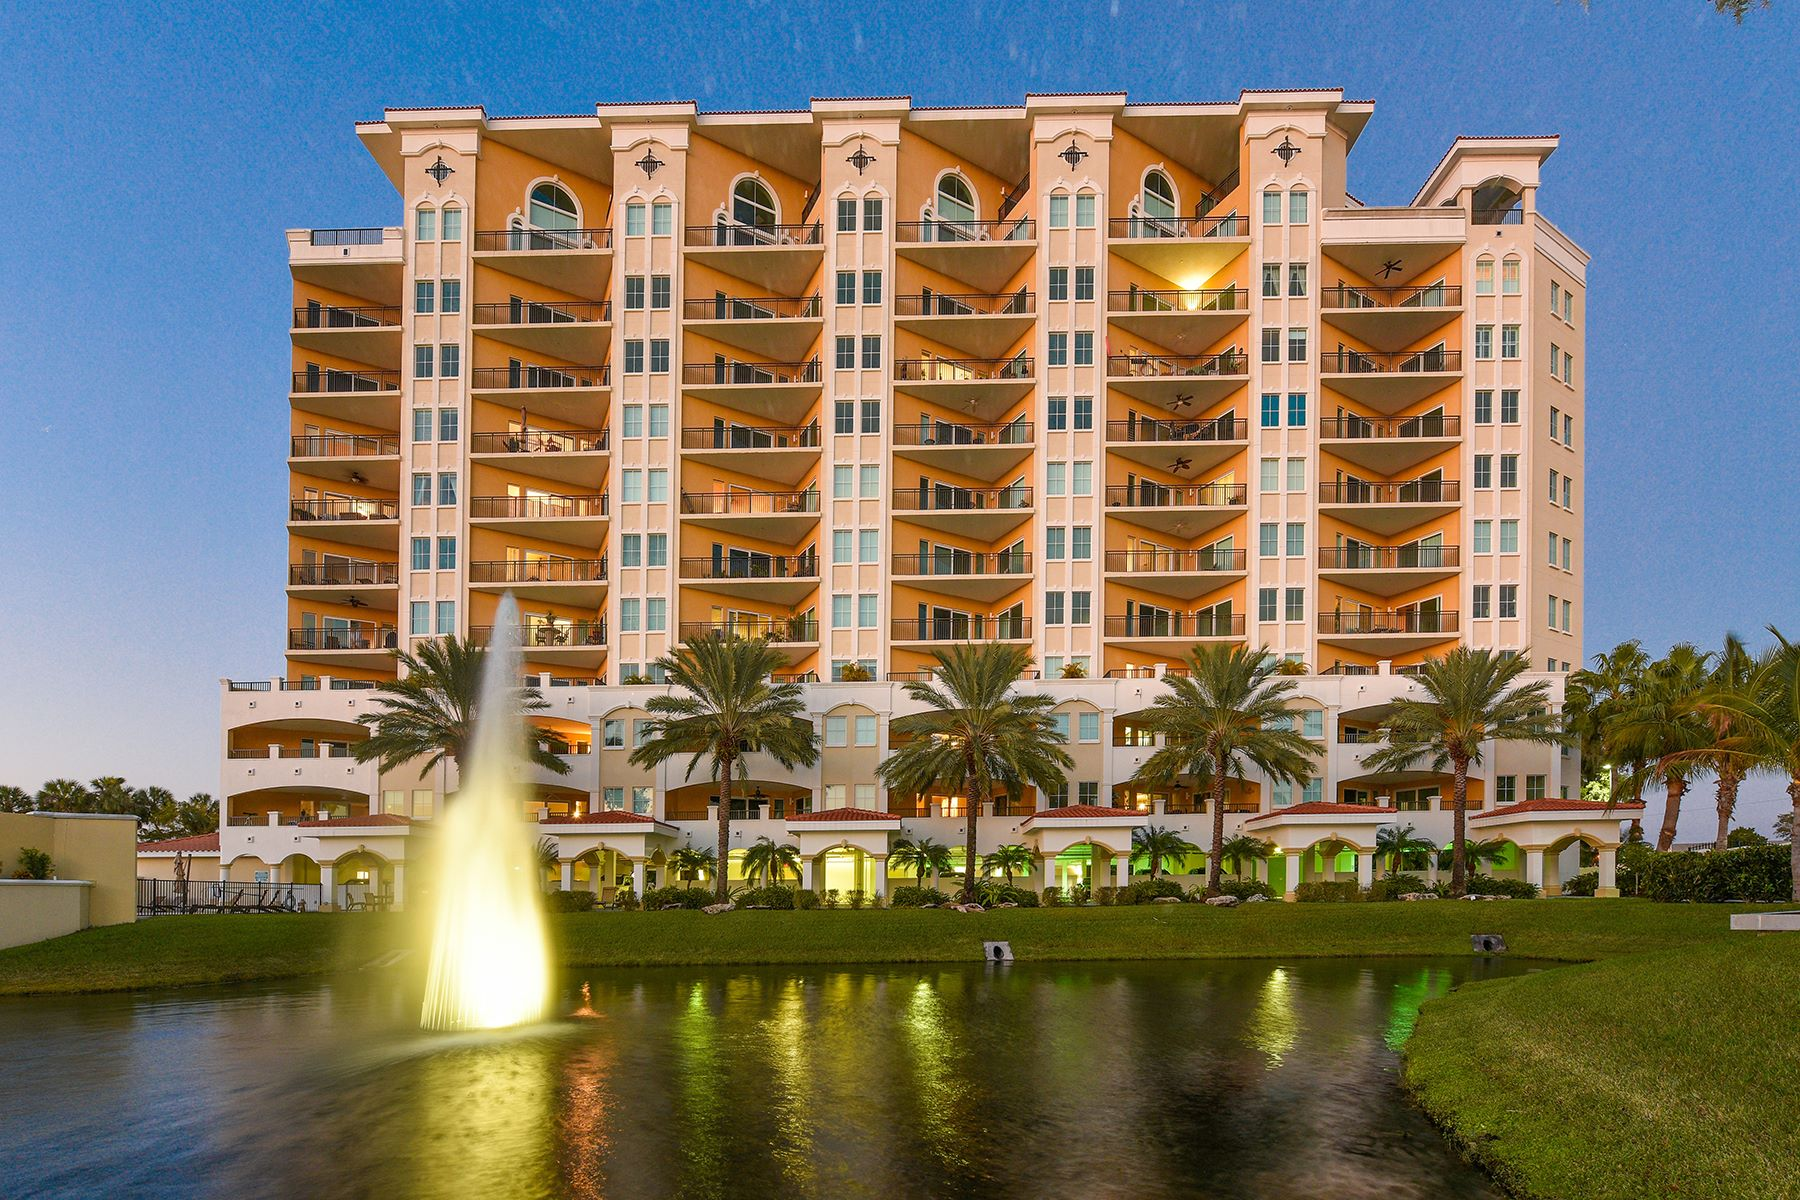 Condominium for Sale at THE PALMS AT RIVIERA DUNES 501 Haben Blvd 1104, Palmetto, Florida 34221 United States